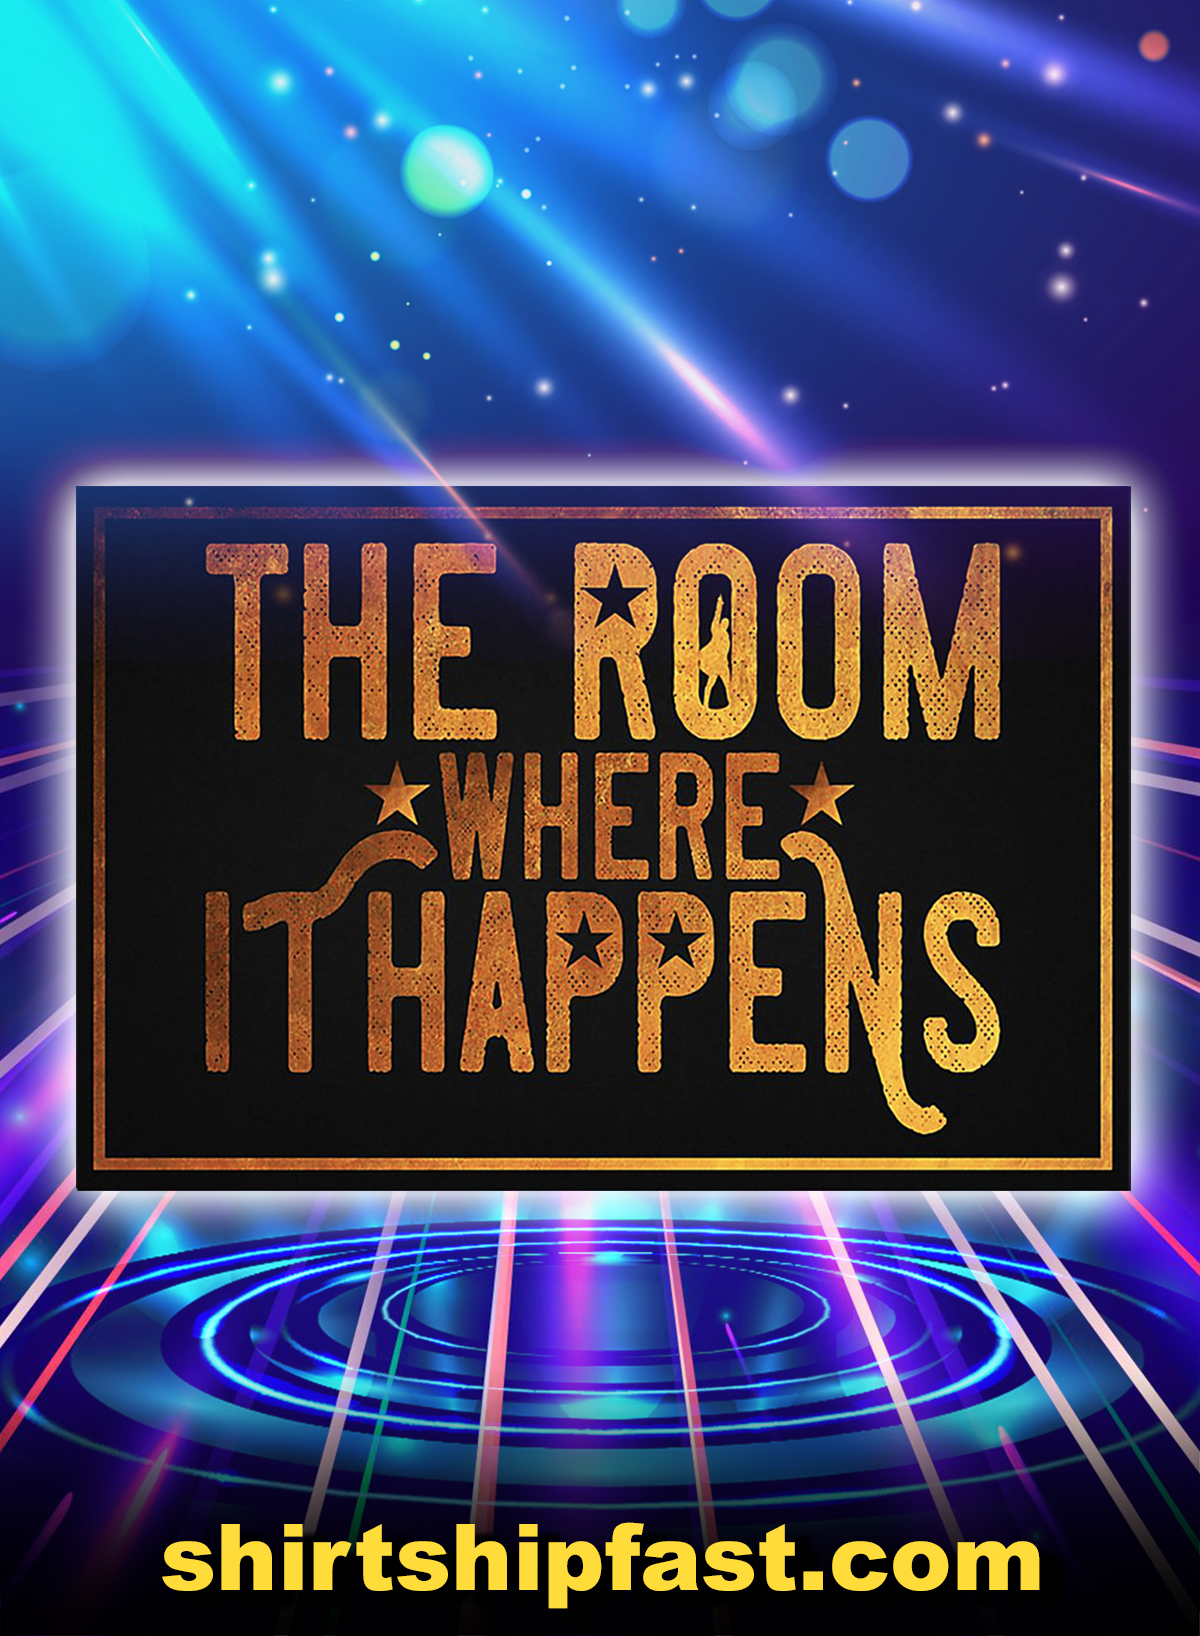 The room where it happens poster - A1